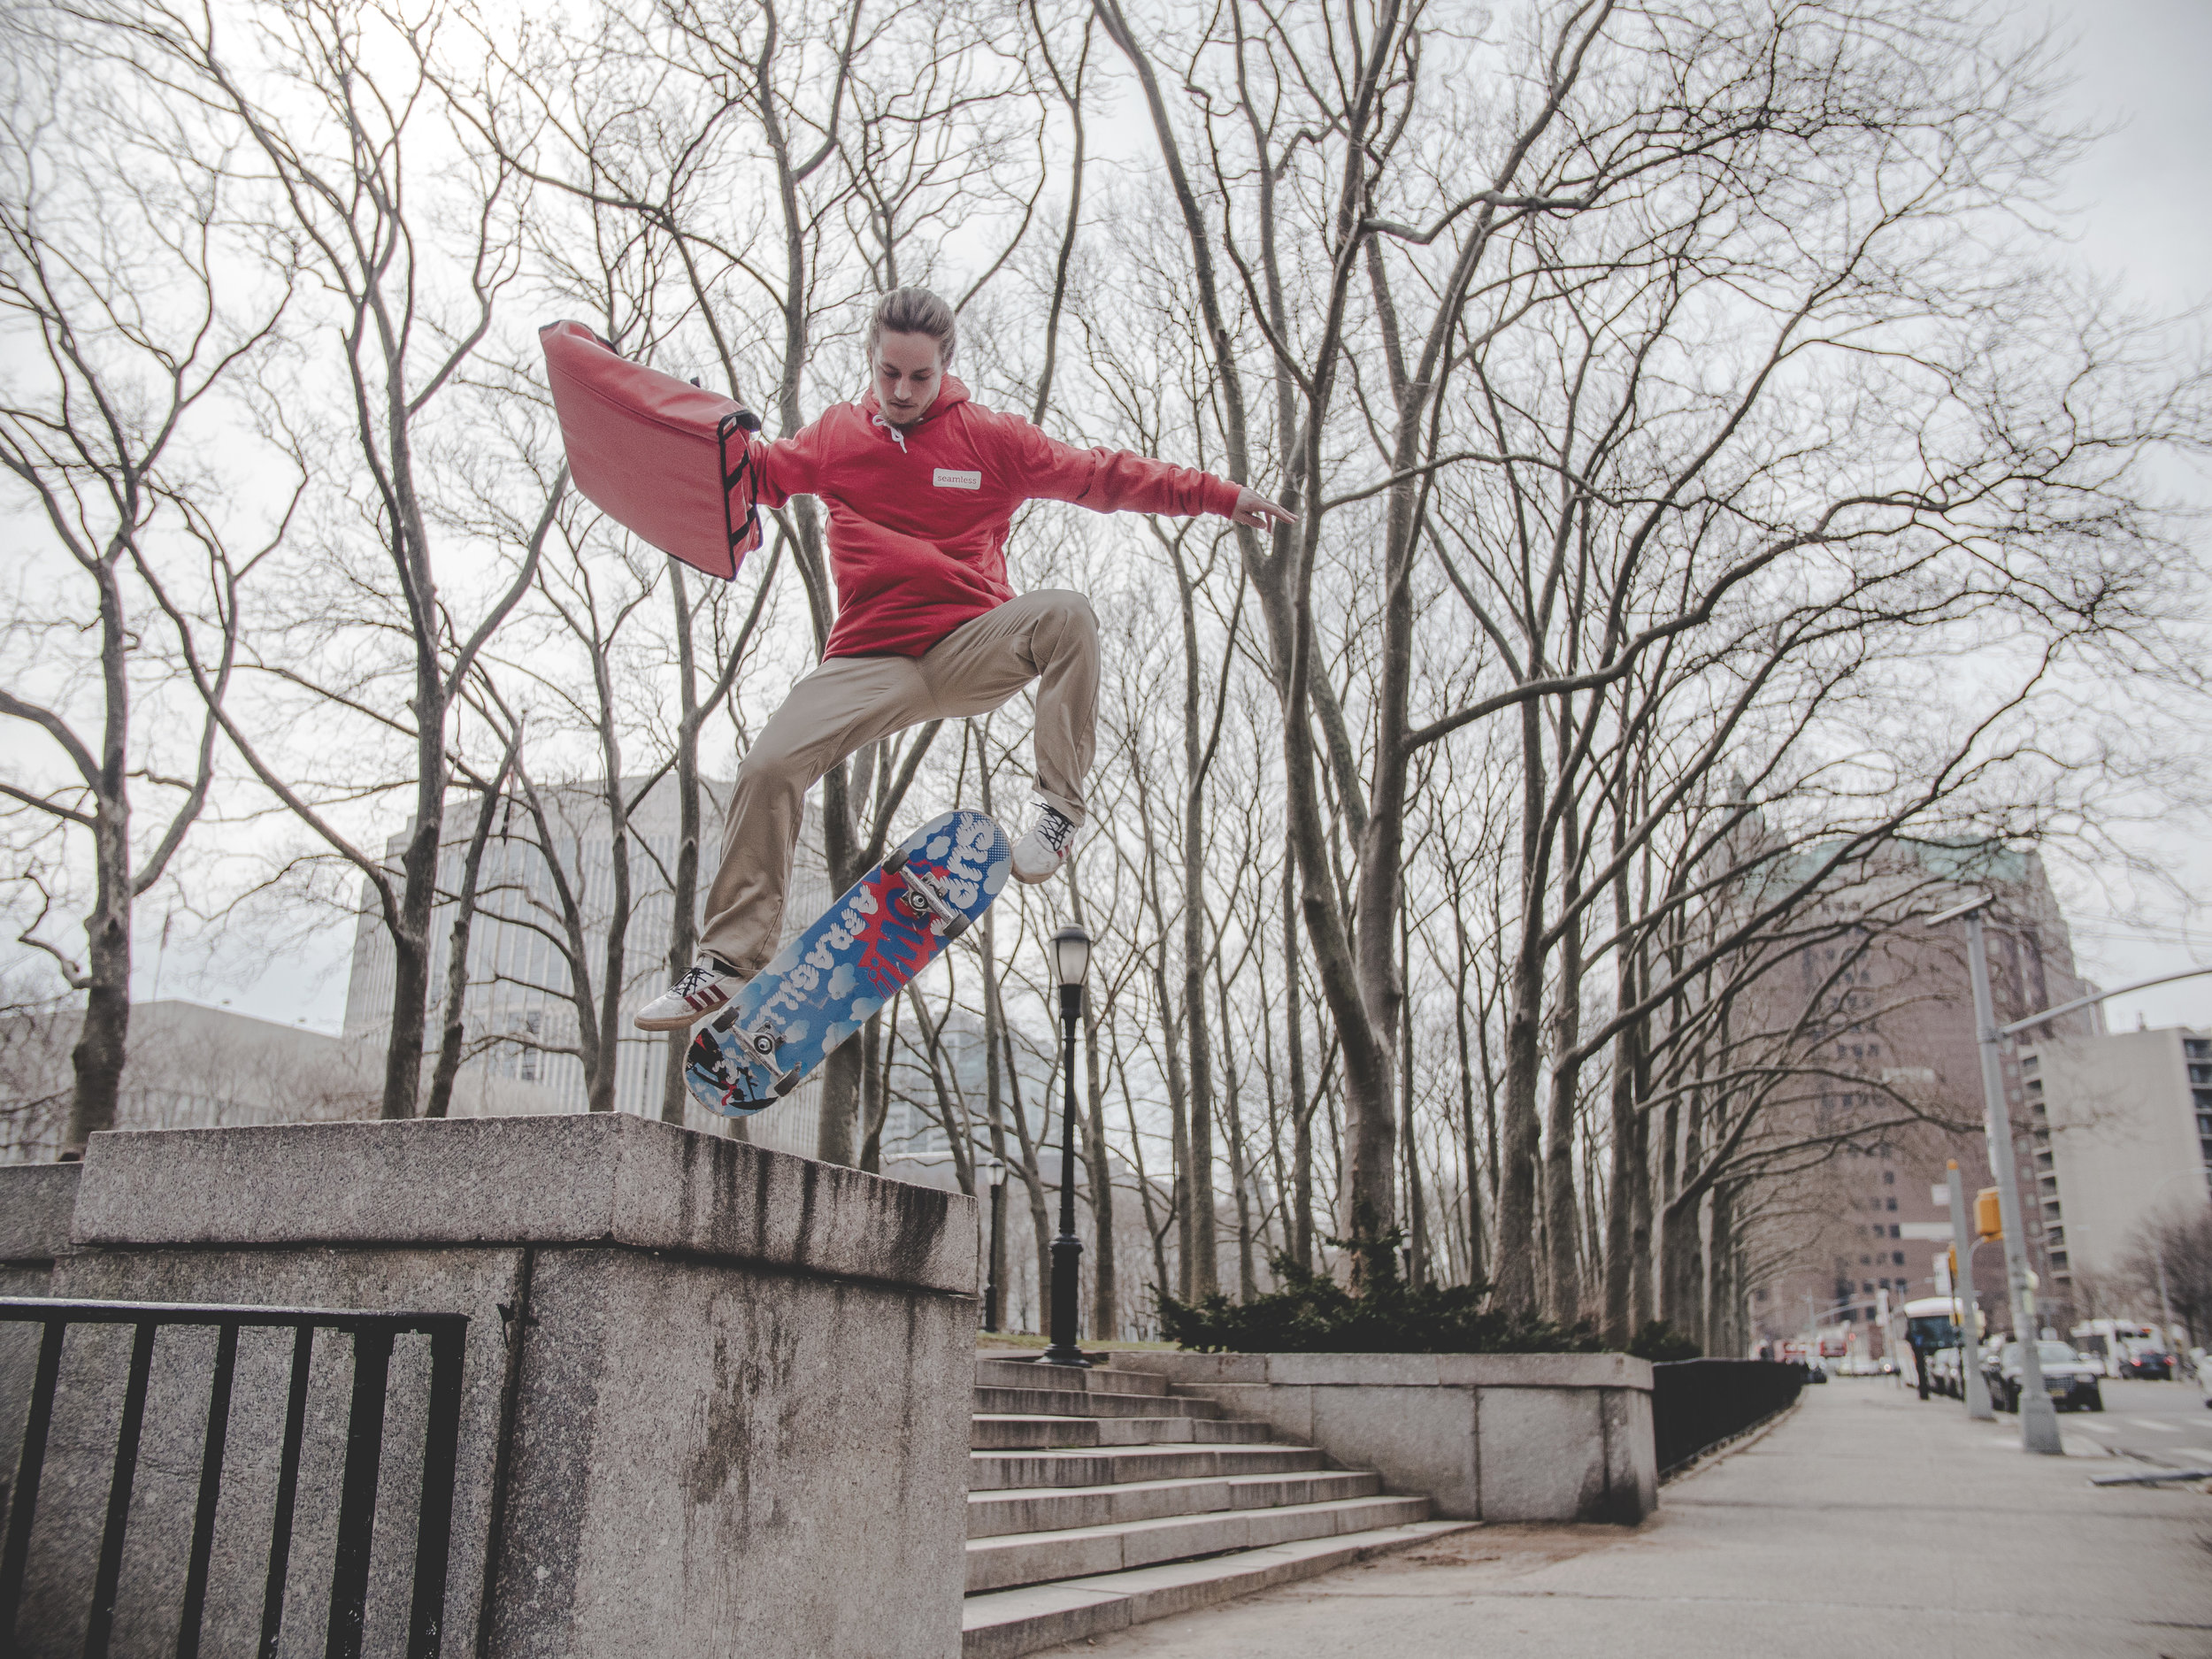 Angelo-Skateboarding-Parkour-Seamless-Grubub-Freeruning-Brooklyn-NY-NYC-New-York-Kickflip